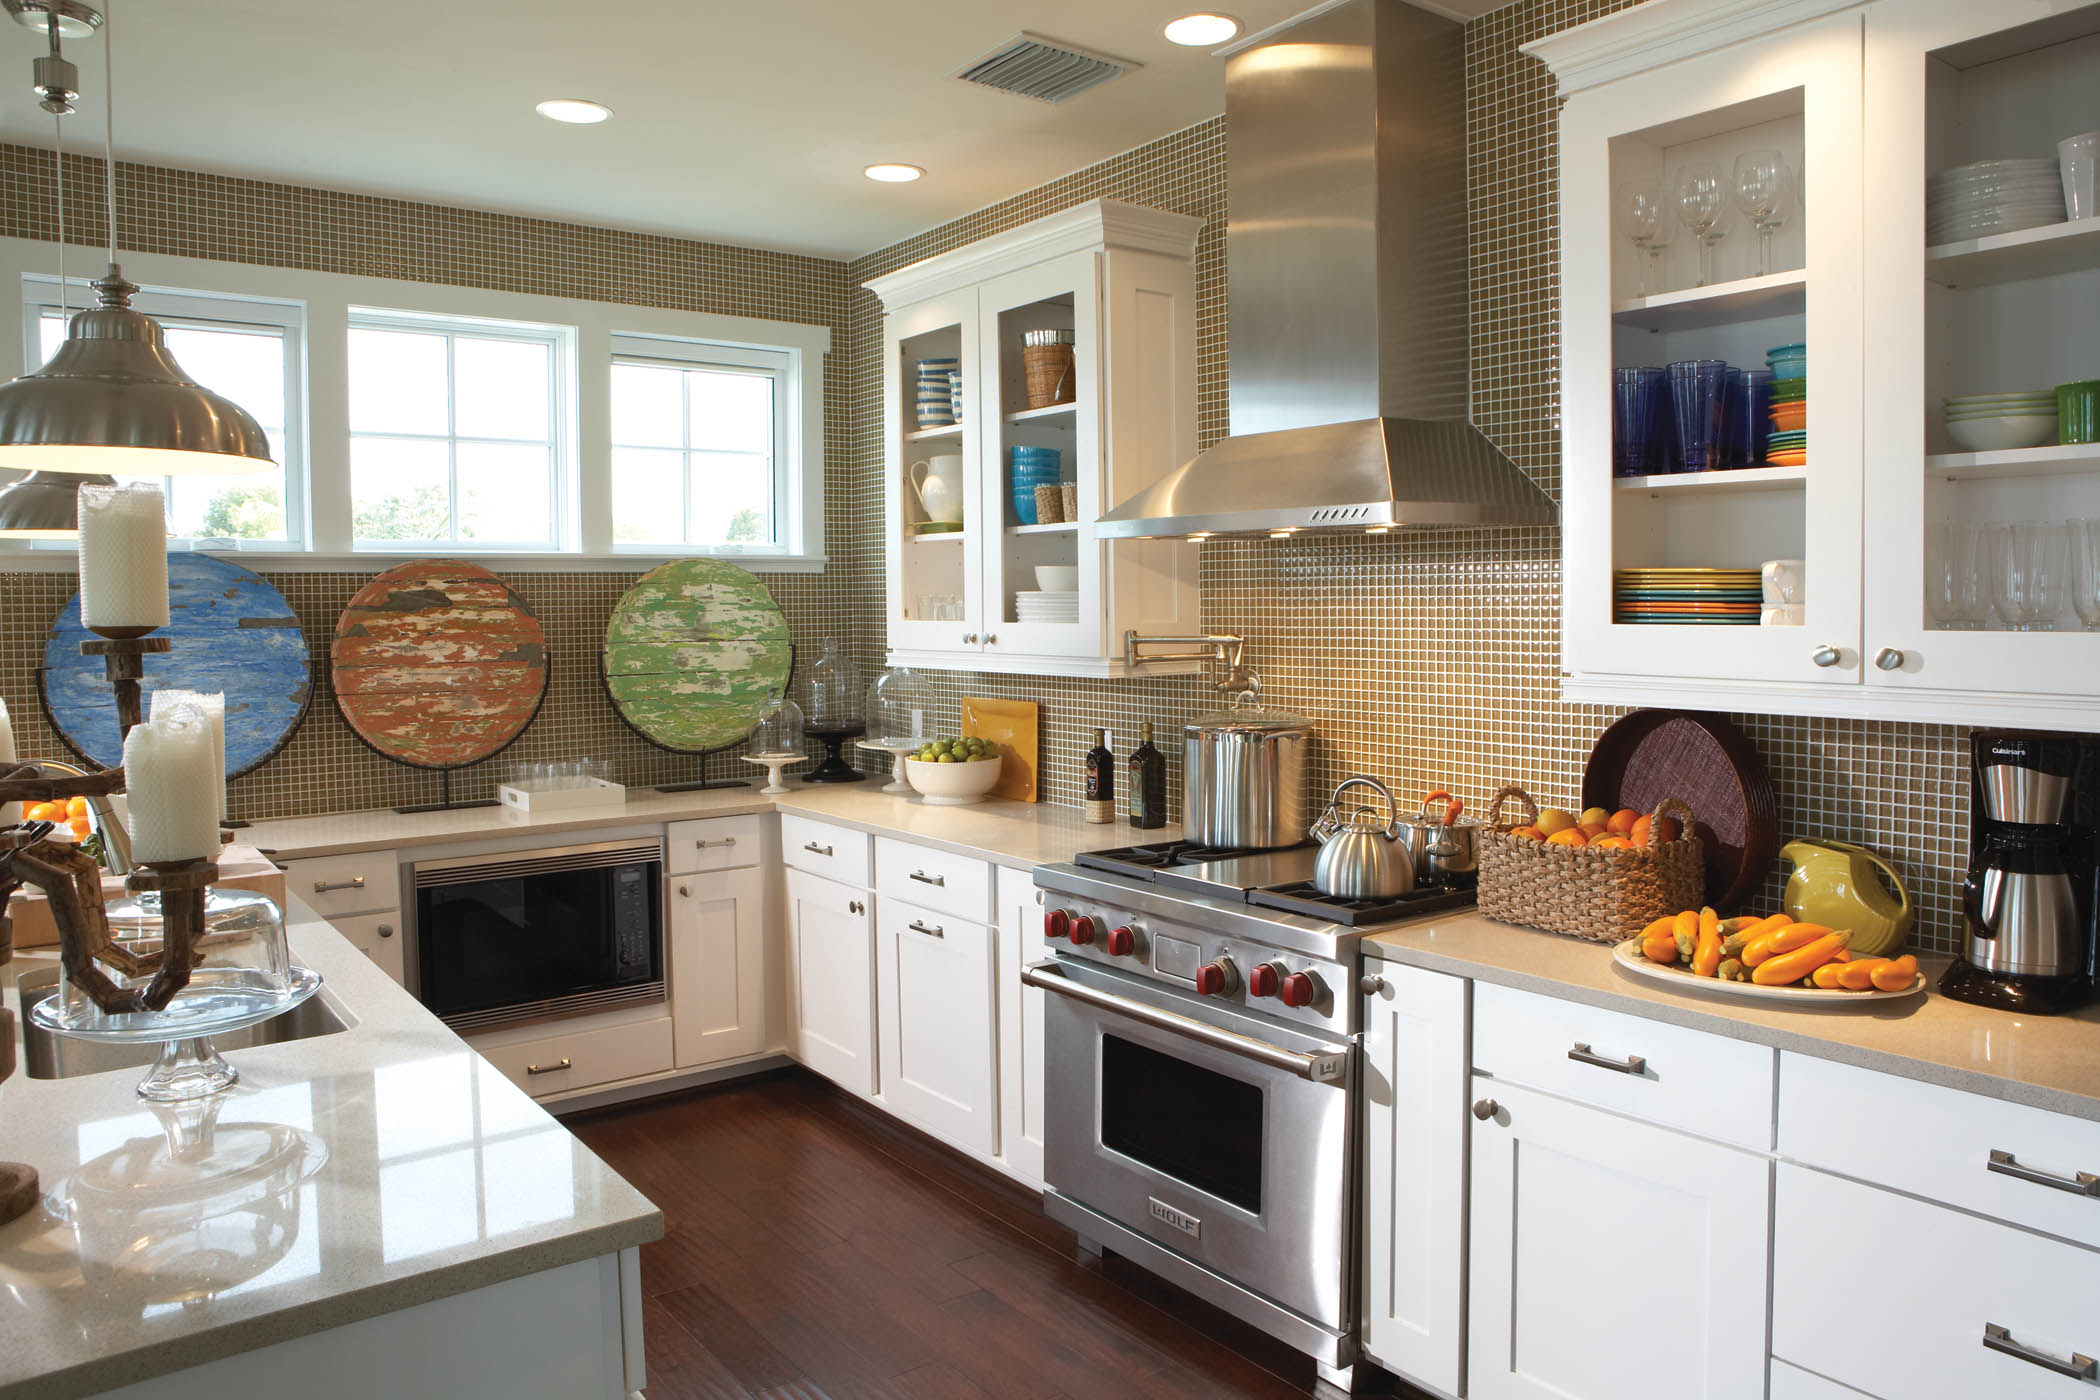 Kitchen Styles 2015 what's your kitchen style? | wellborn cabinet blog